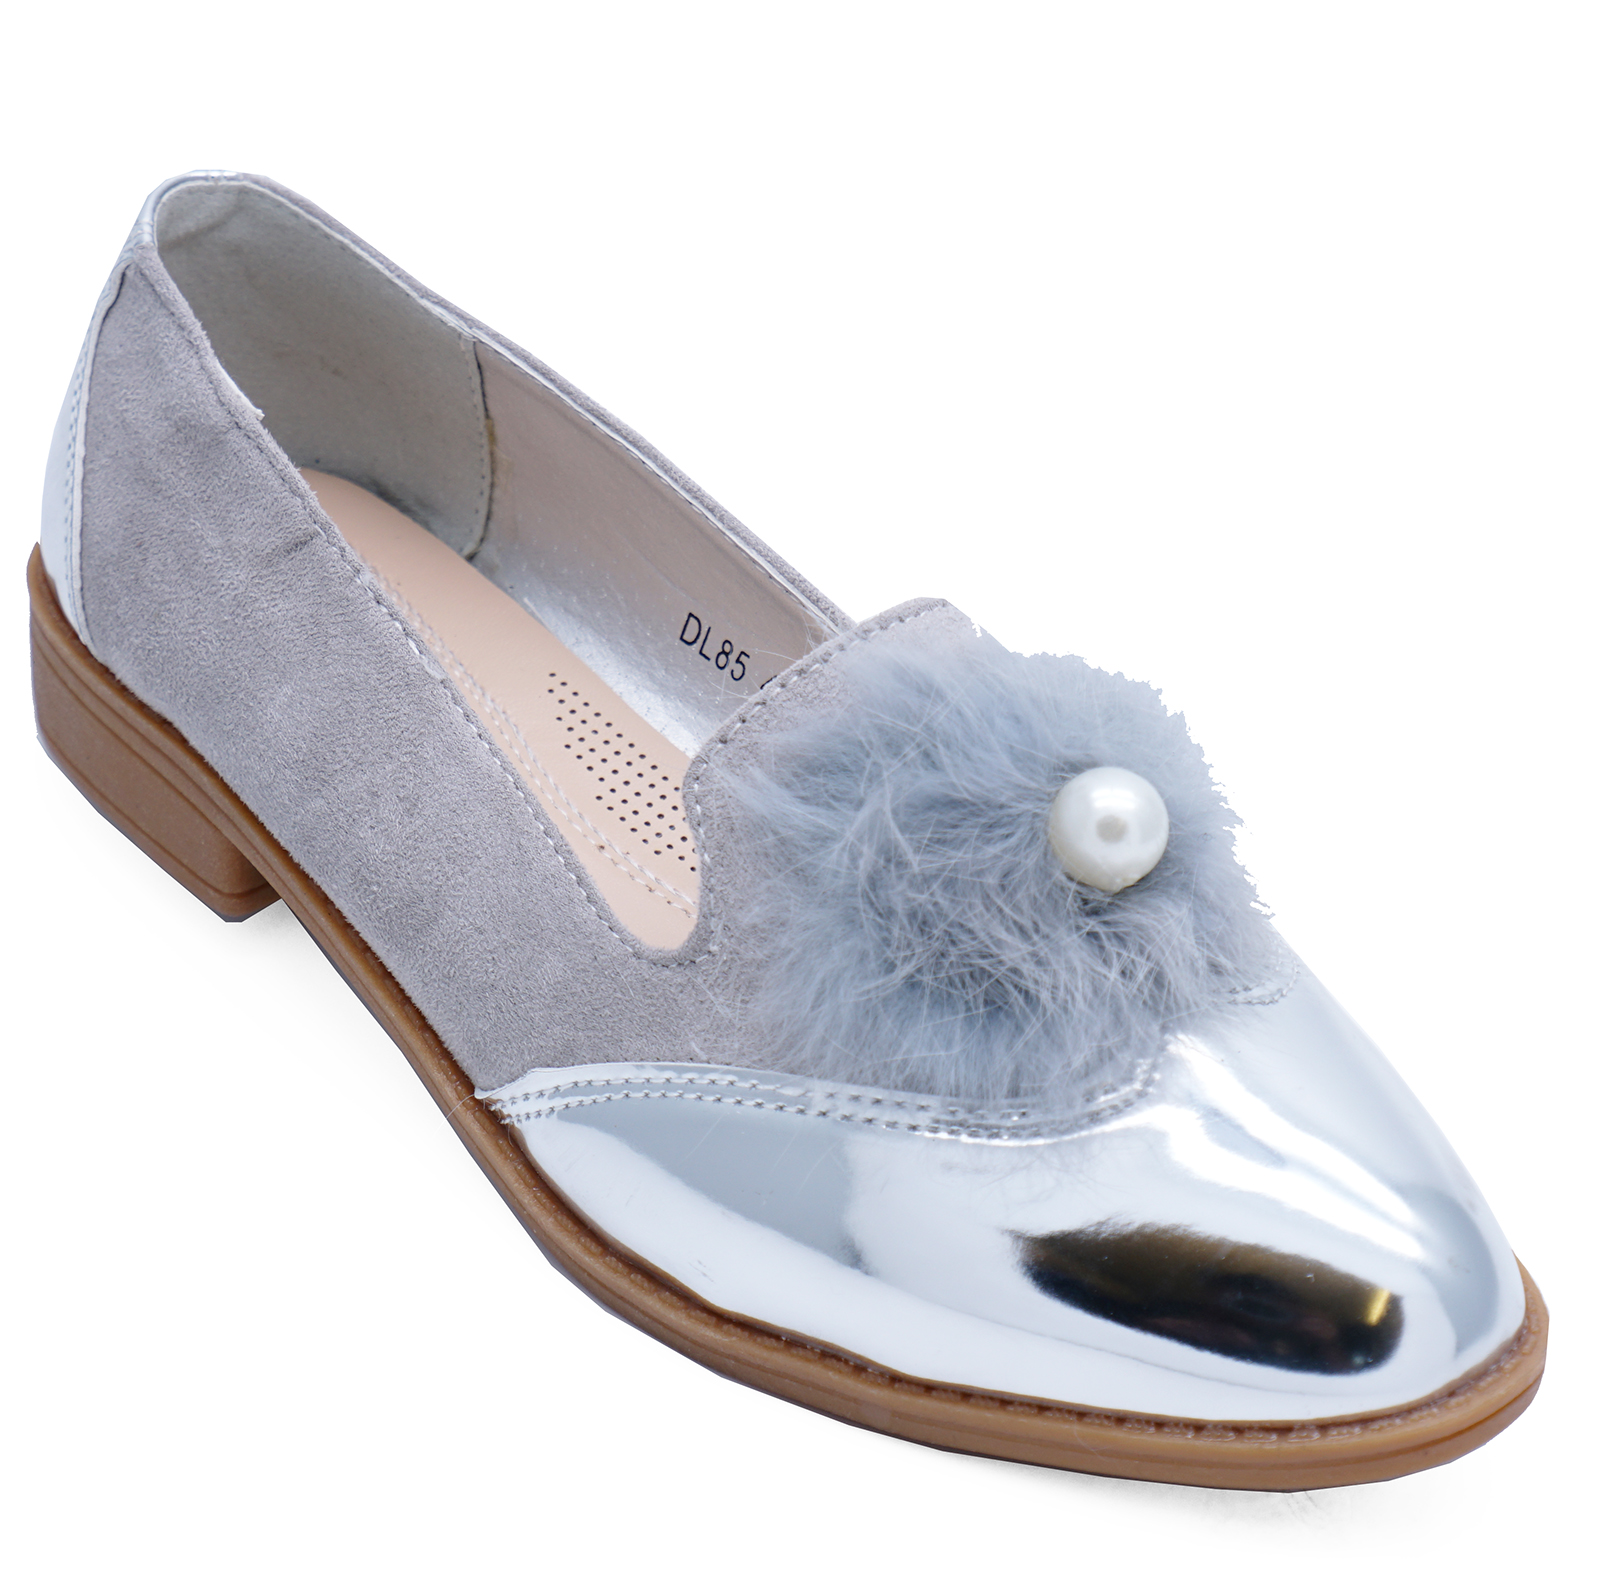 e0ec48d7a52 Sentinel LADIES SILVER SLIP-ON METALLIC LOAFERS SMART CASUAL WORK COMFY  FLAT SHOES UK 3-